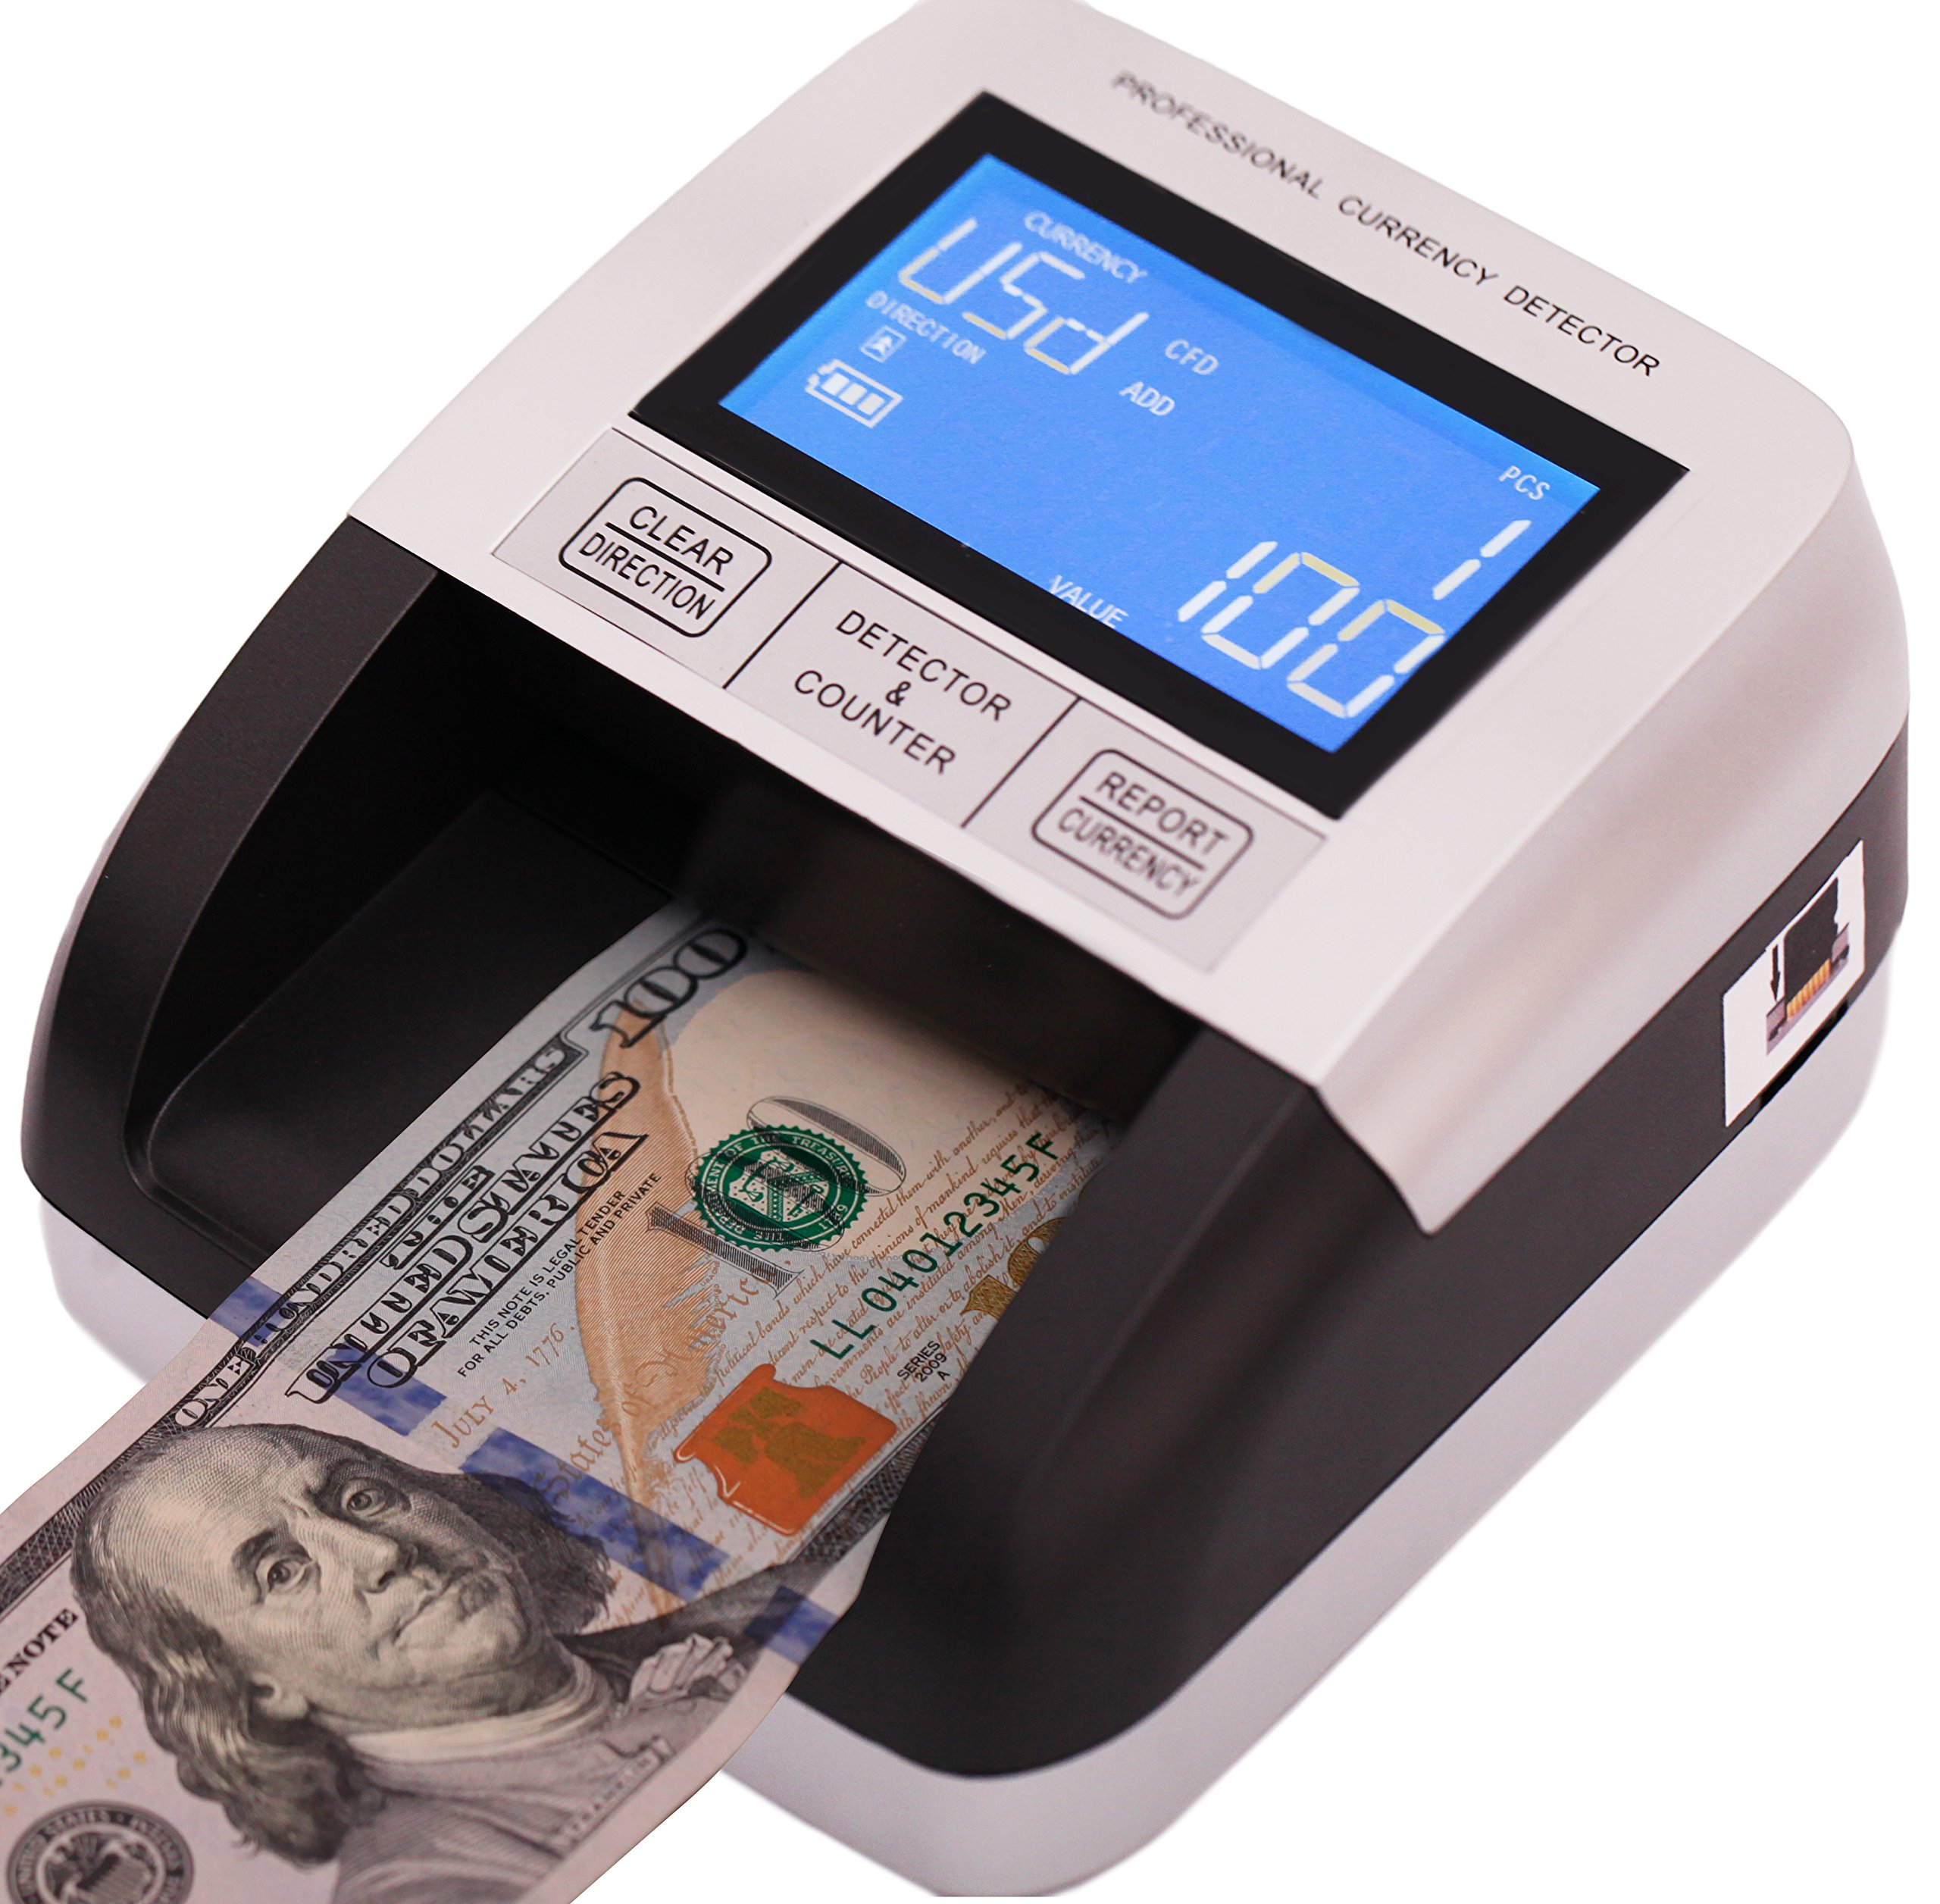 Multi Currency Professional Counterfeit Bill Detector USD EUR CAD MXN 6 Detection Modes with Battery by Eko S